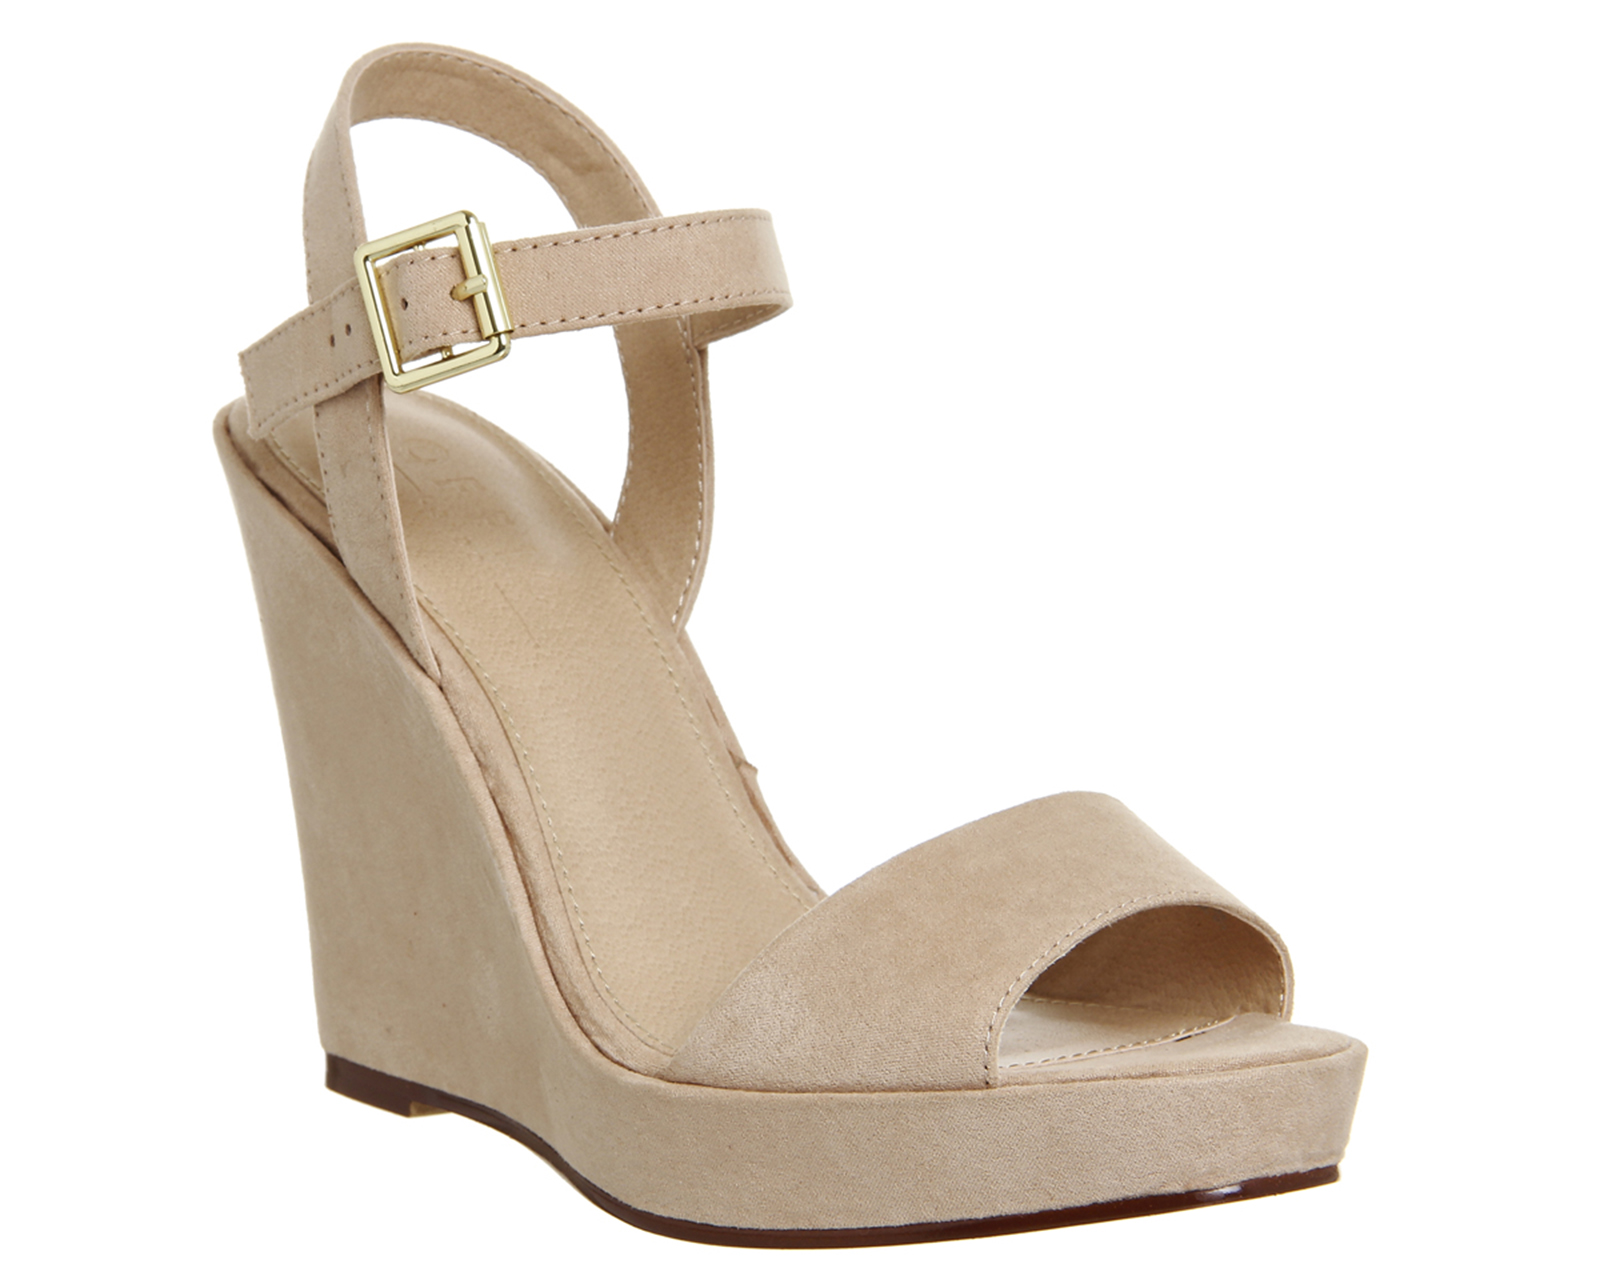 7184042f6dc4 Womens Office Mai Tai Two Part Wedge Sandals NUDE Heels